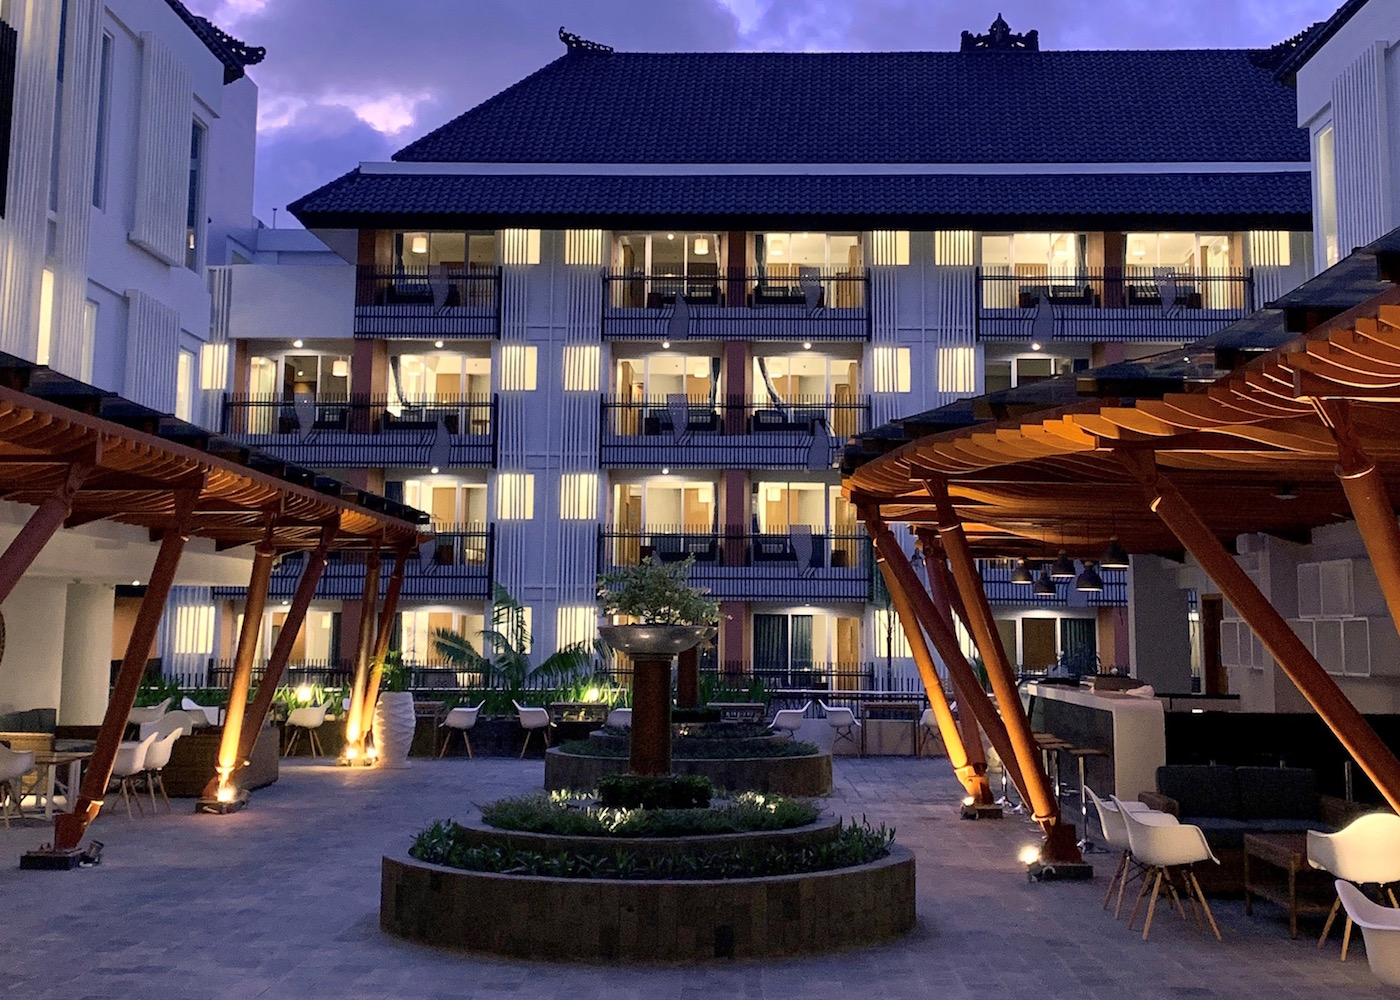 Meet the new Fairfield by Marriott Bali Kuta Sunset Road – a hotel with cultural Indonesian touches